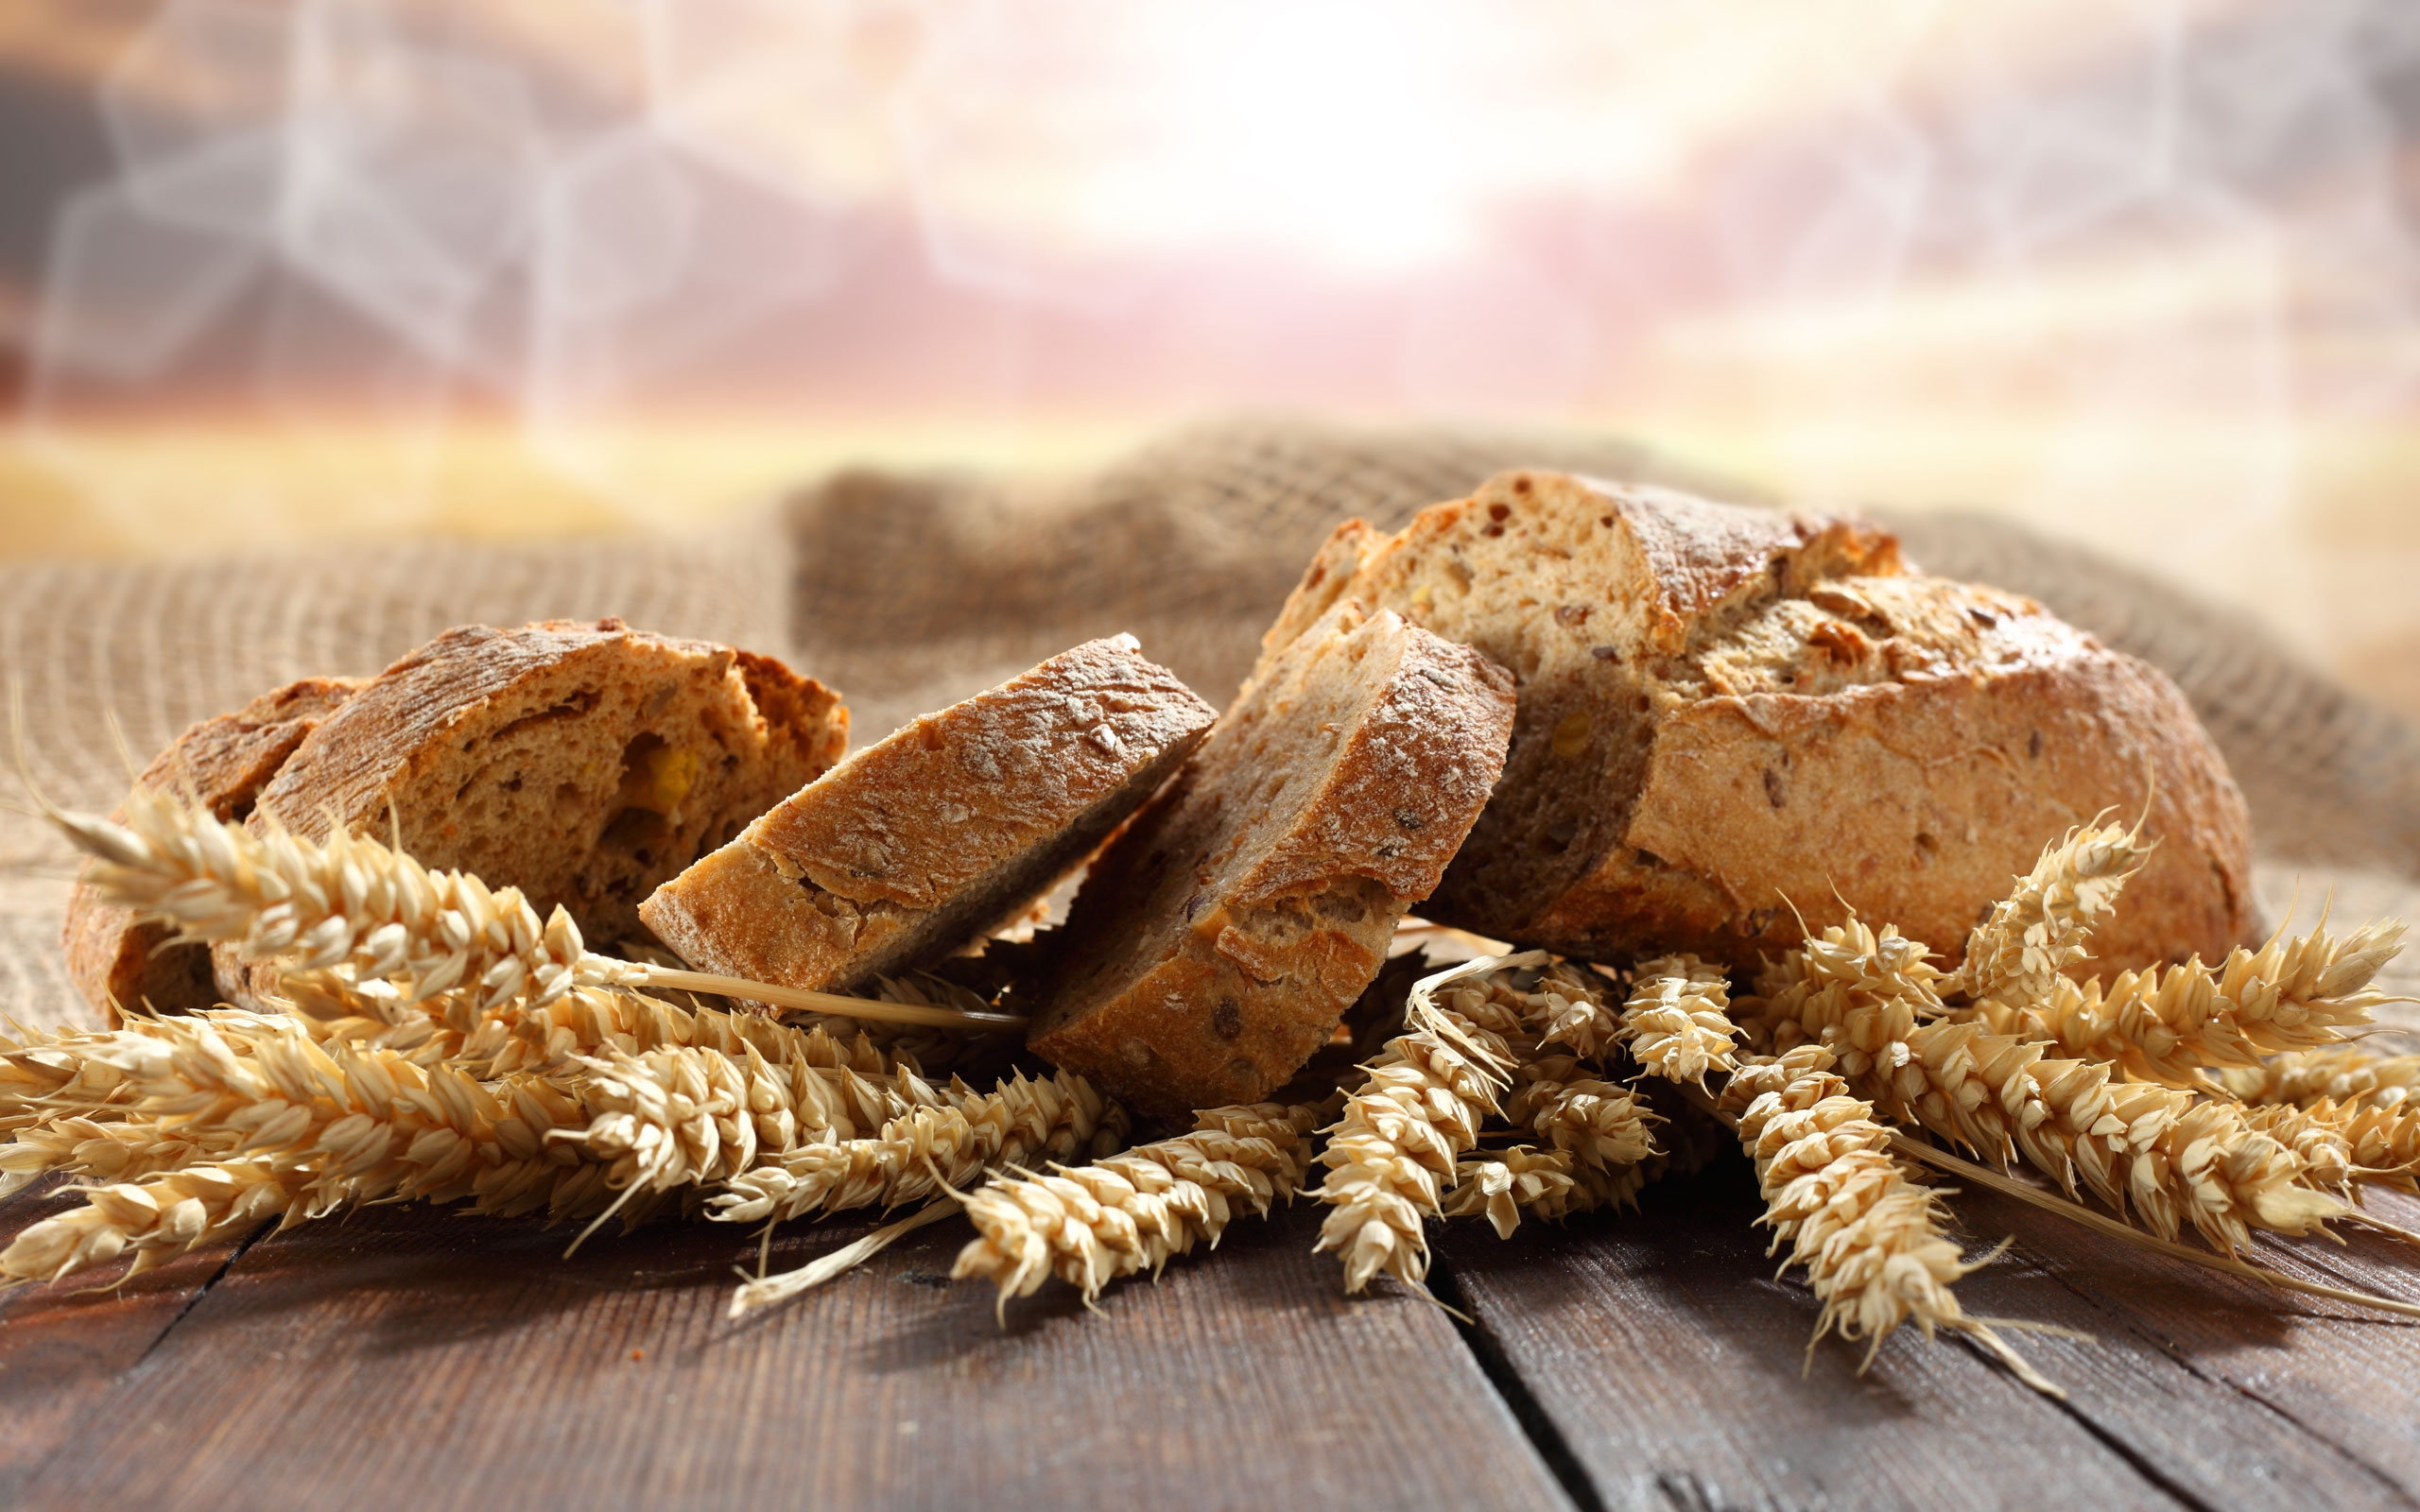 12 Outstanding Hd Bread Wallpapers Hdwallsource Com HD Wallpapers Download Free Images Wallpaper [1000image.com]